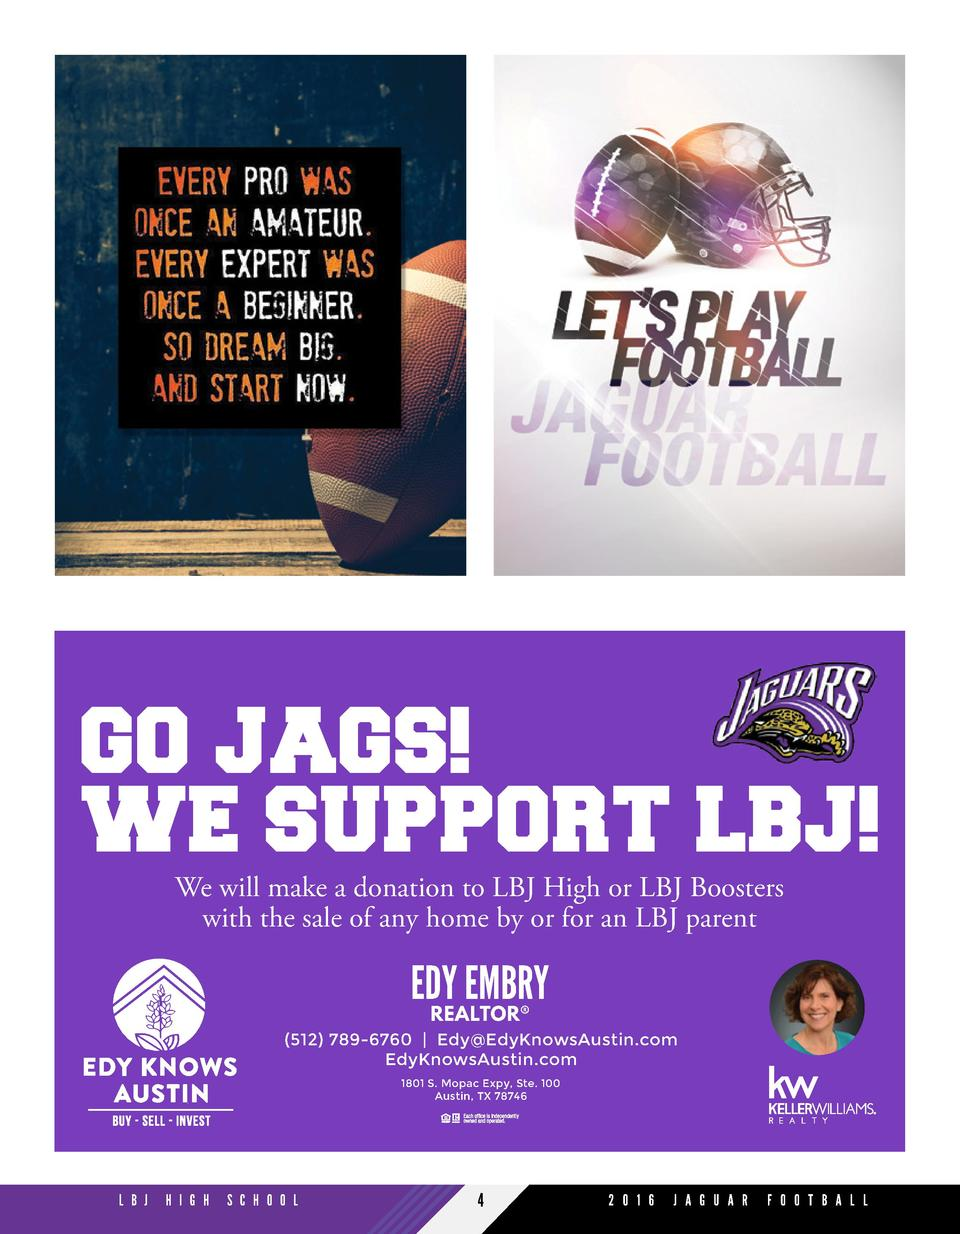 We will make a donation to LBJ High or LBJ Boosters with the sale of any home by or for an LBJ parent  EDY EMBRY REALTOR  ...